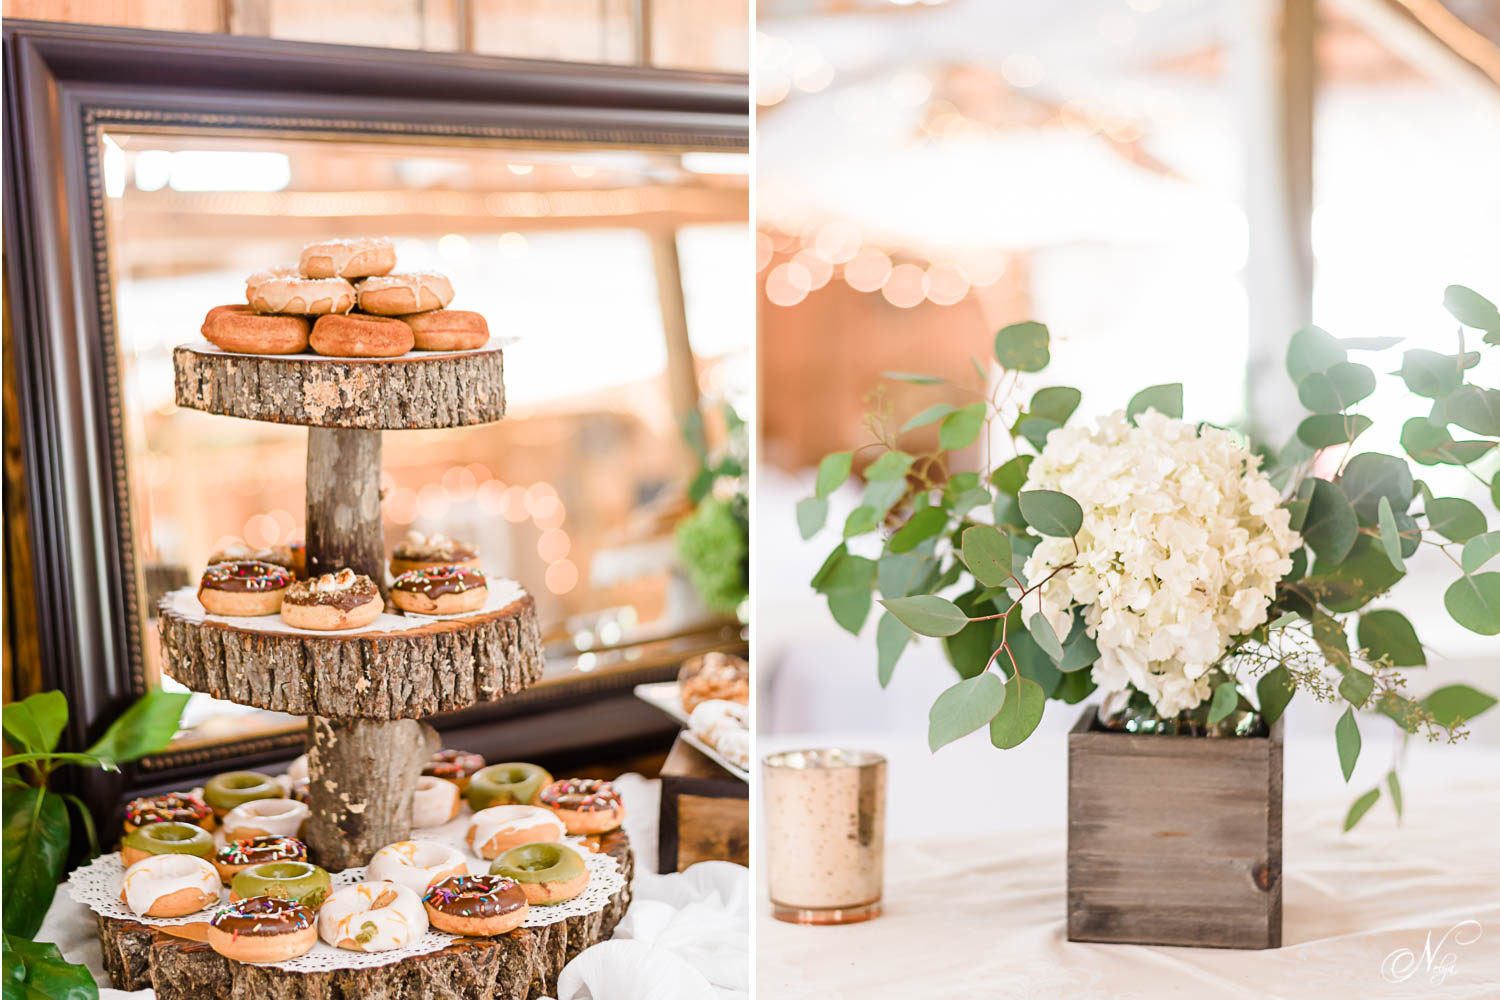 Donut stand made of rustic wood with coconut vegan donuts. And table center pieces in little wooden boxes full of hydrangeas and greenery